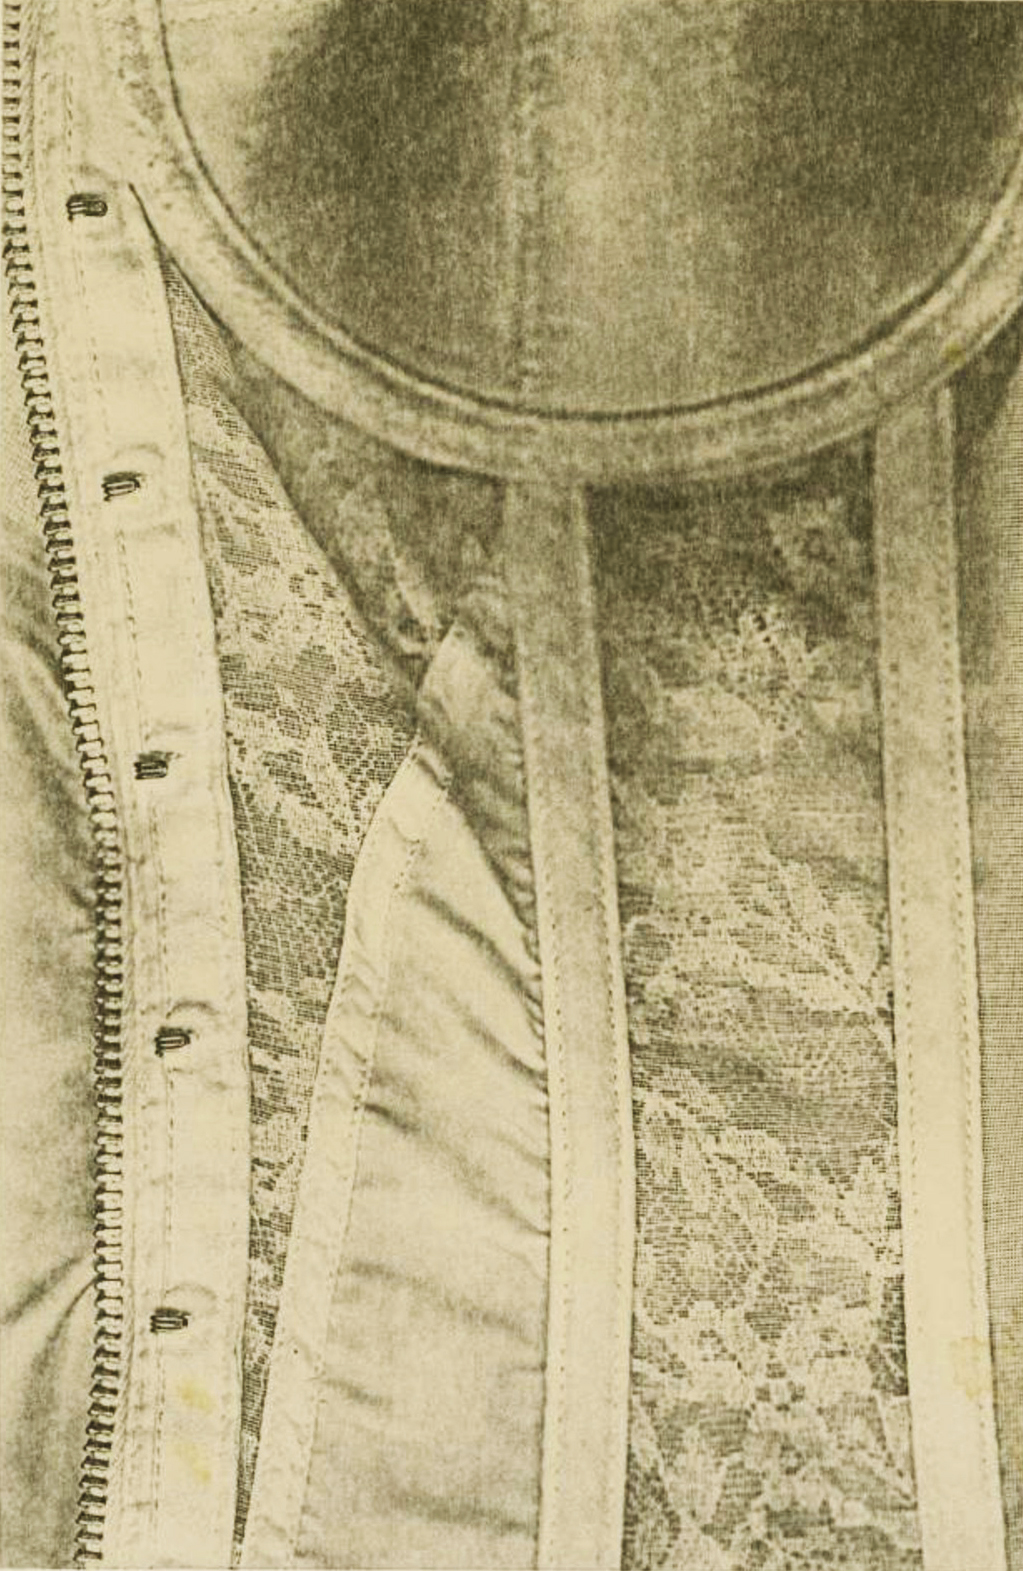 Pati Hill,  Section of Corset,  1976, Black and white photocopy, In original mat, 8 ¾ × 5 ¾ inches